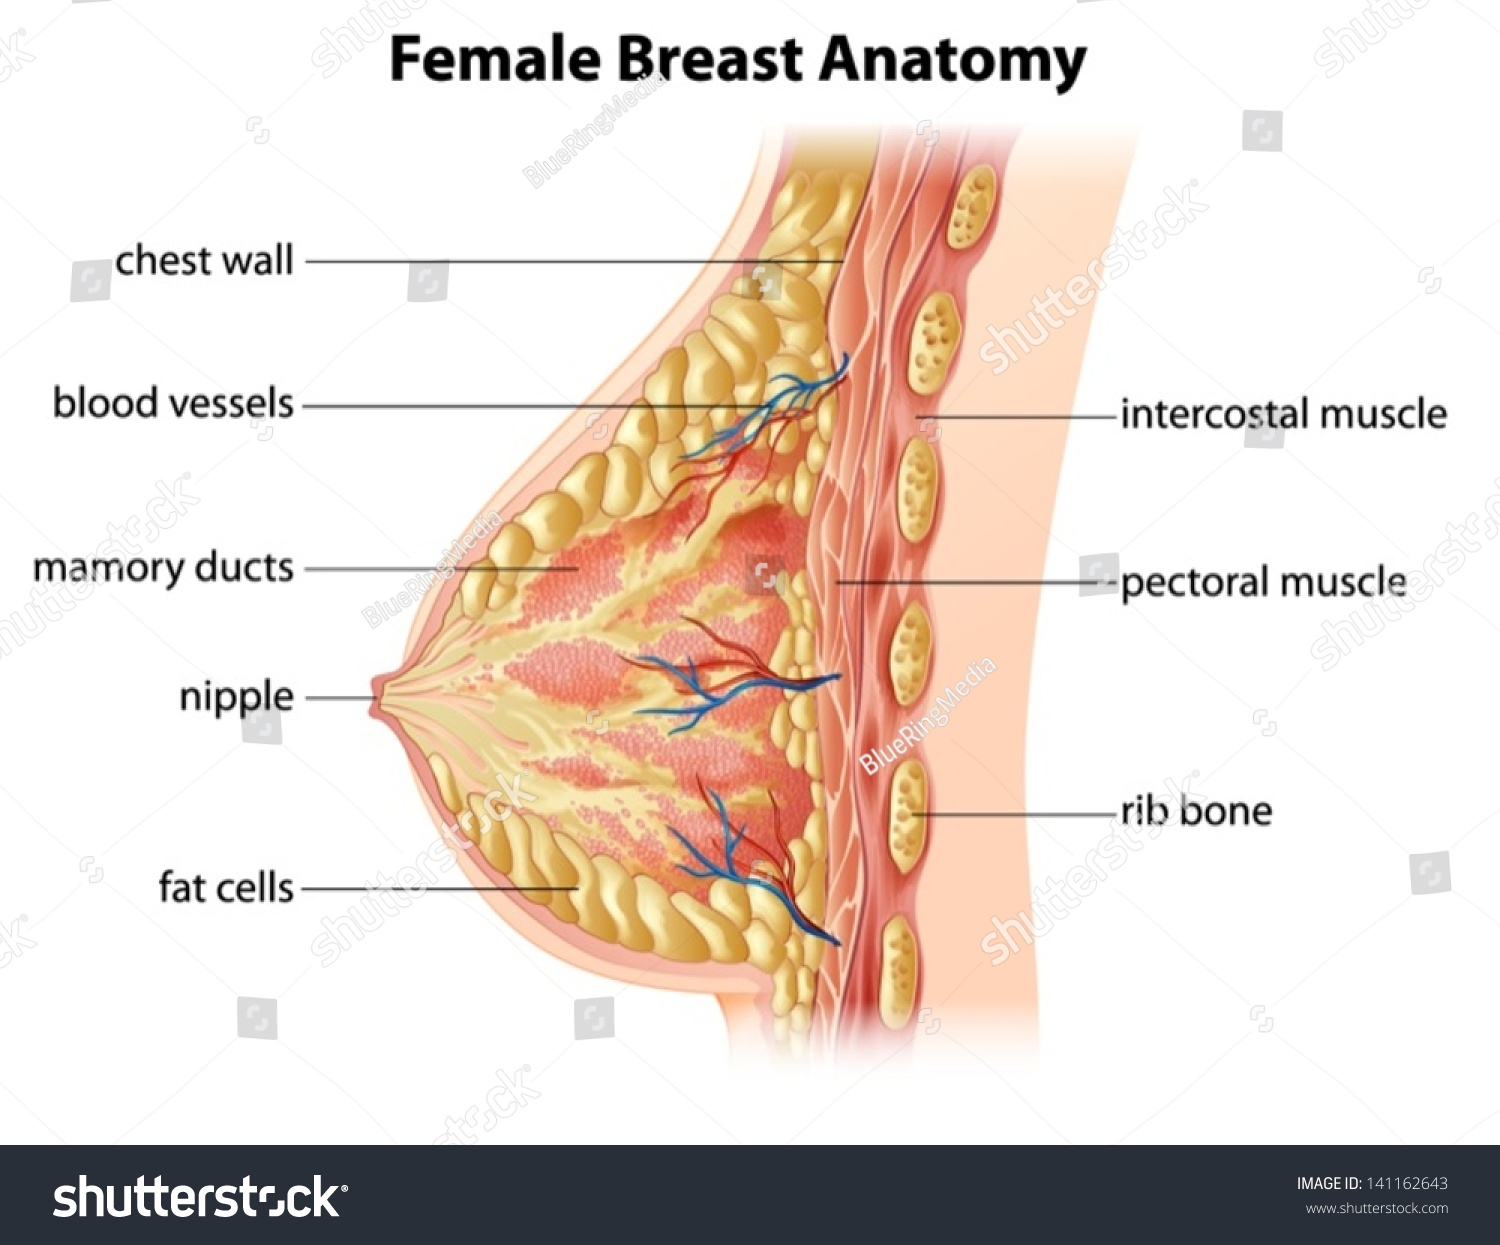 Stock Vector Illustration Showing The Female Breast Anatomy